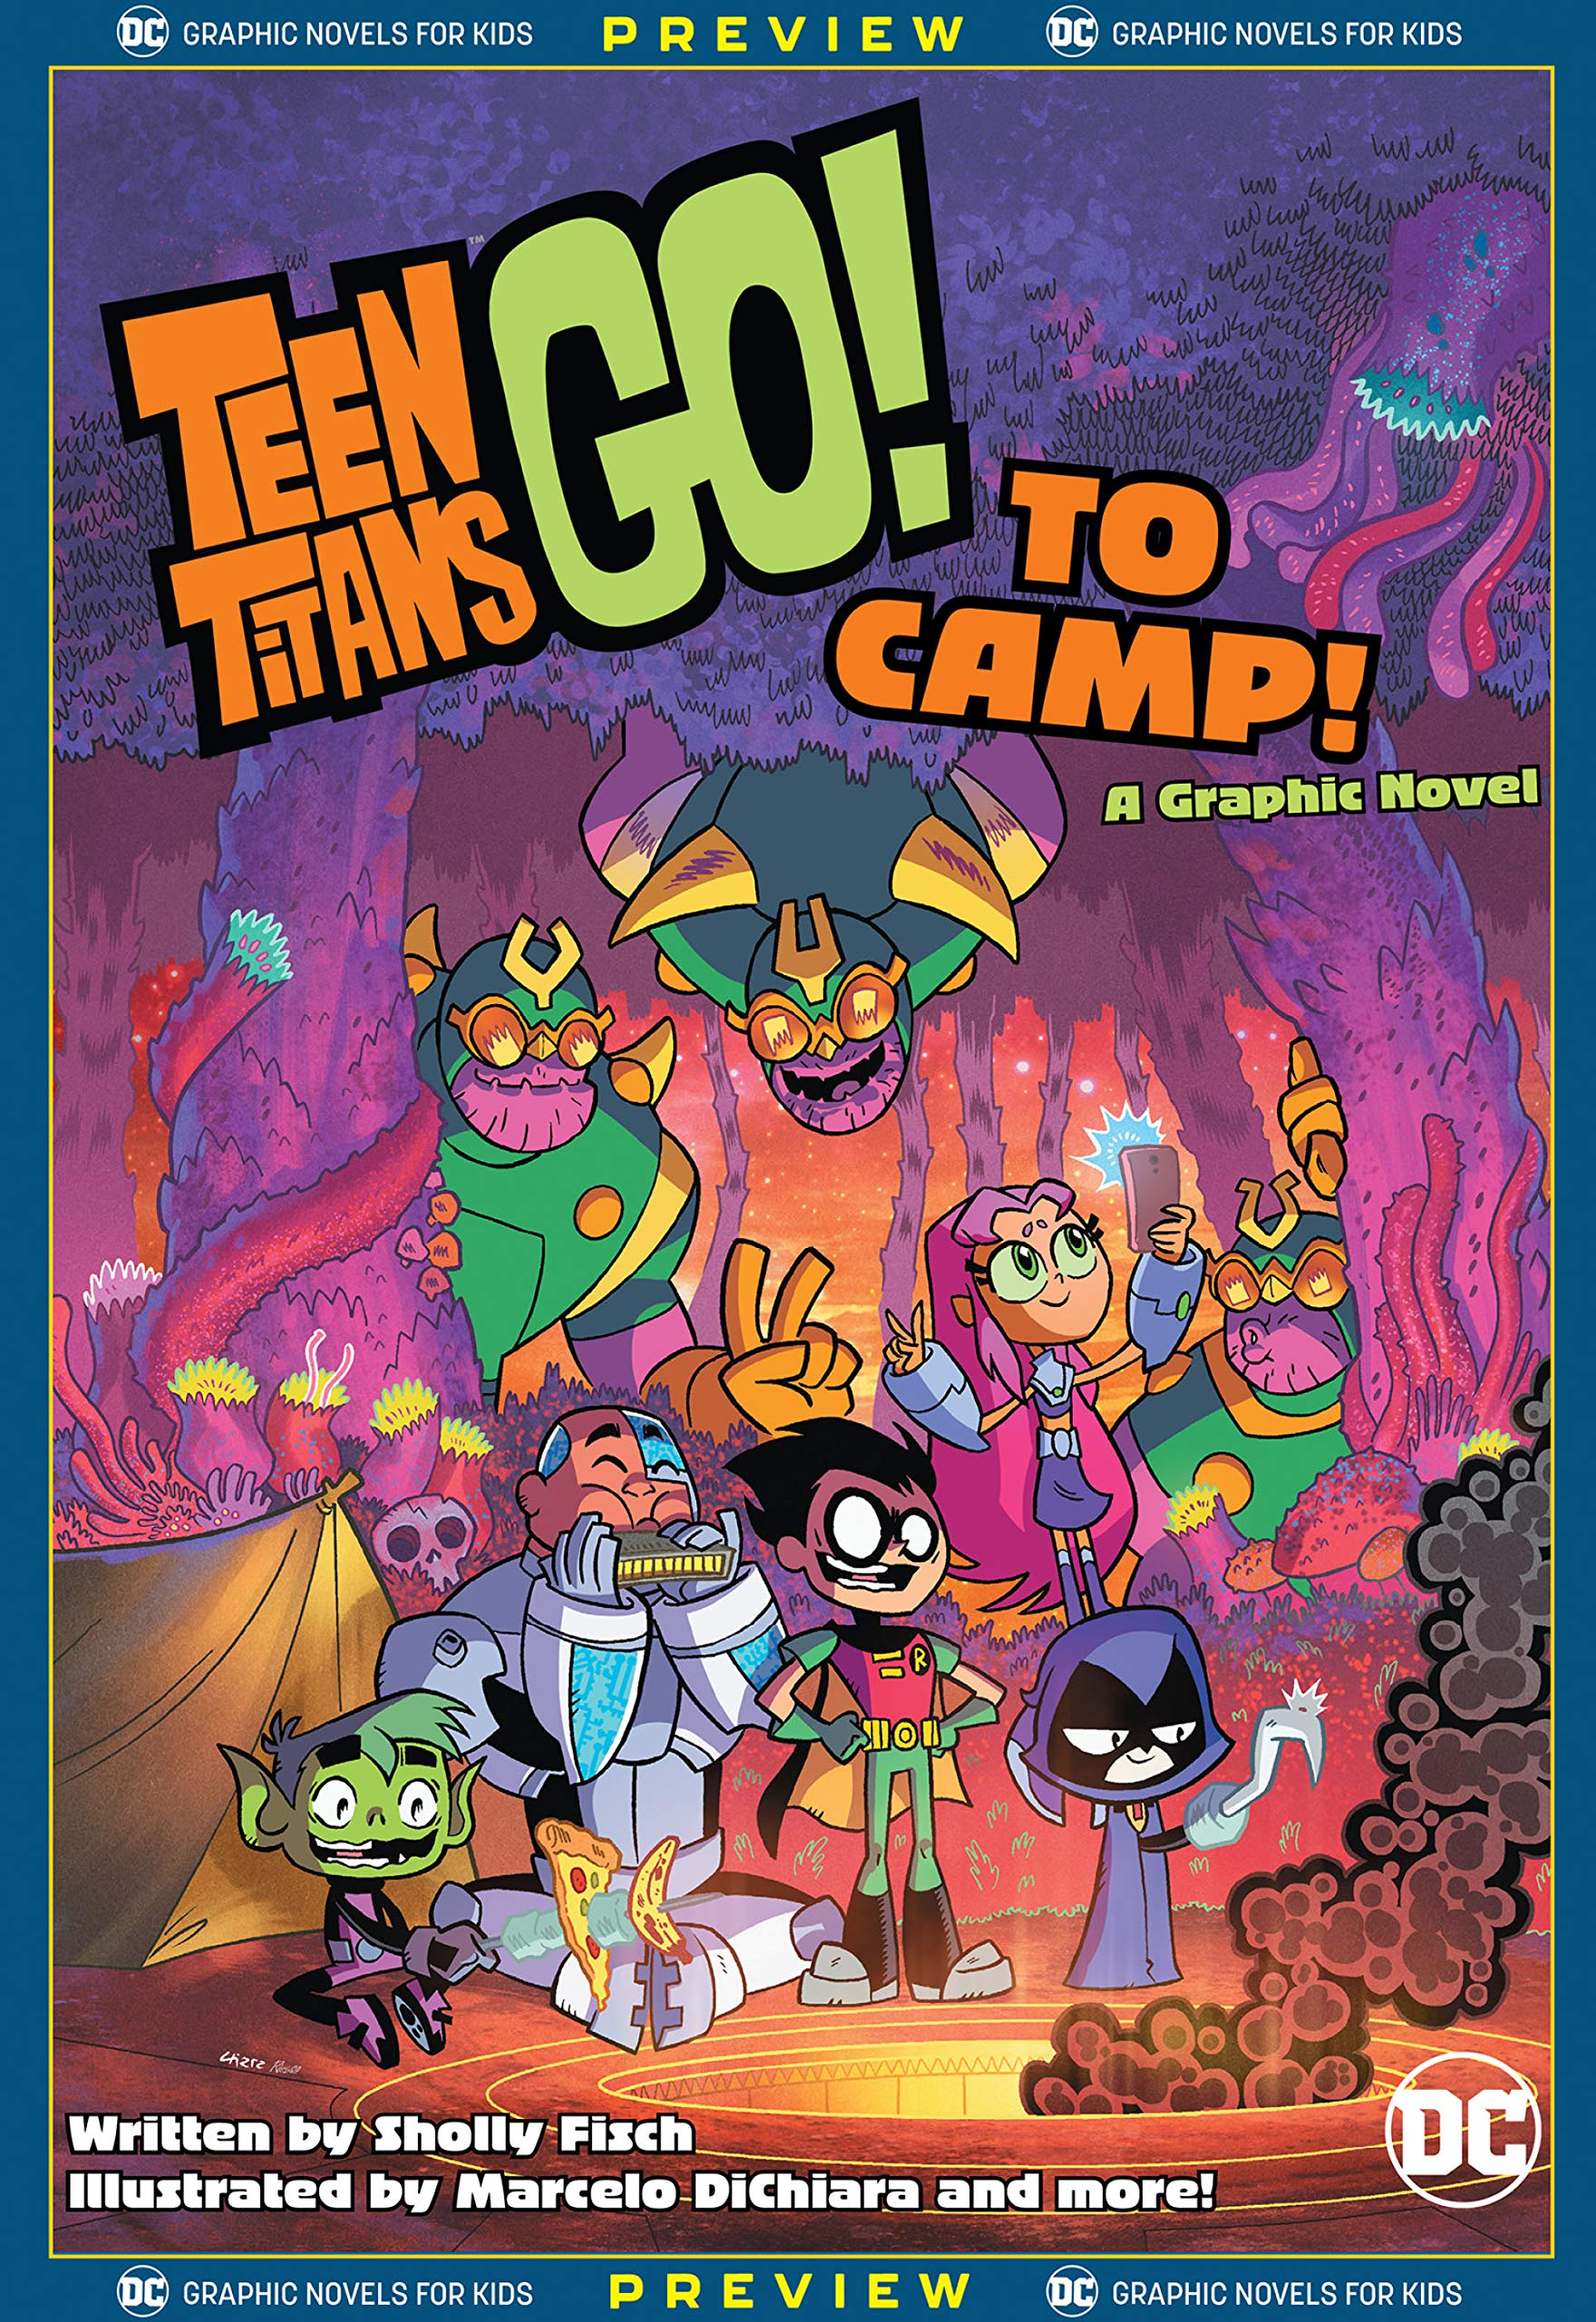 DC Graphic Novels for Kids Sneak Peeks: Teen Titans Go! to Camp #1